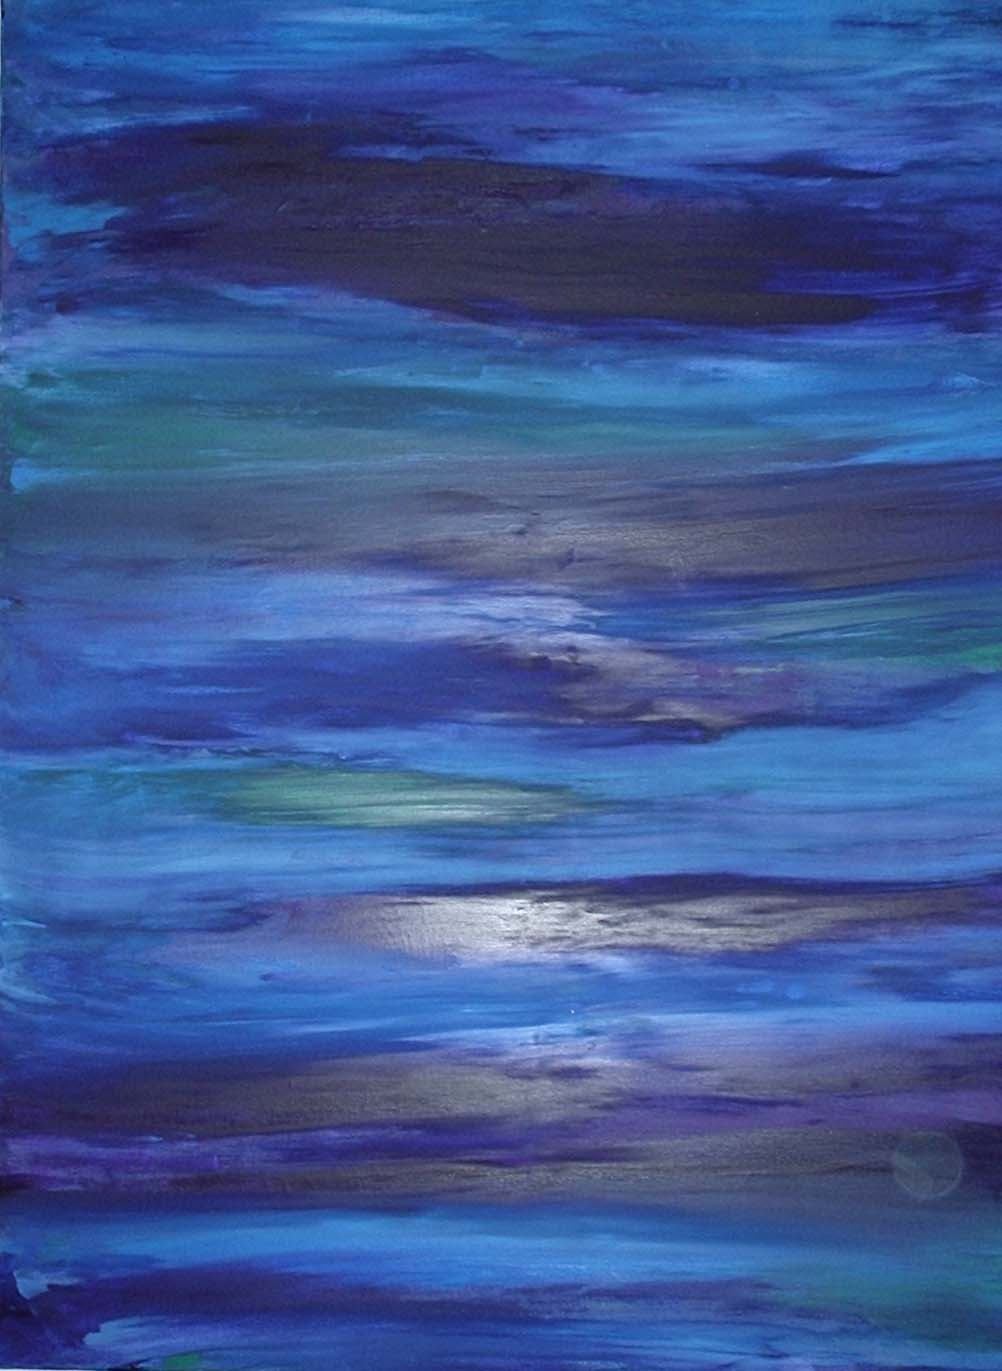 Waves of Tranquility 81cm x 102 cm Sold